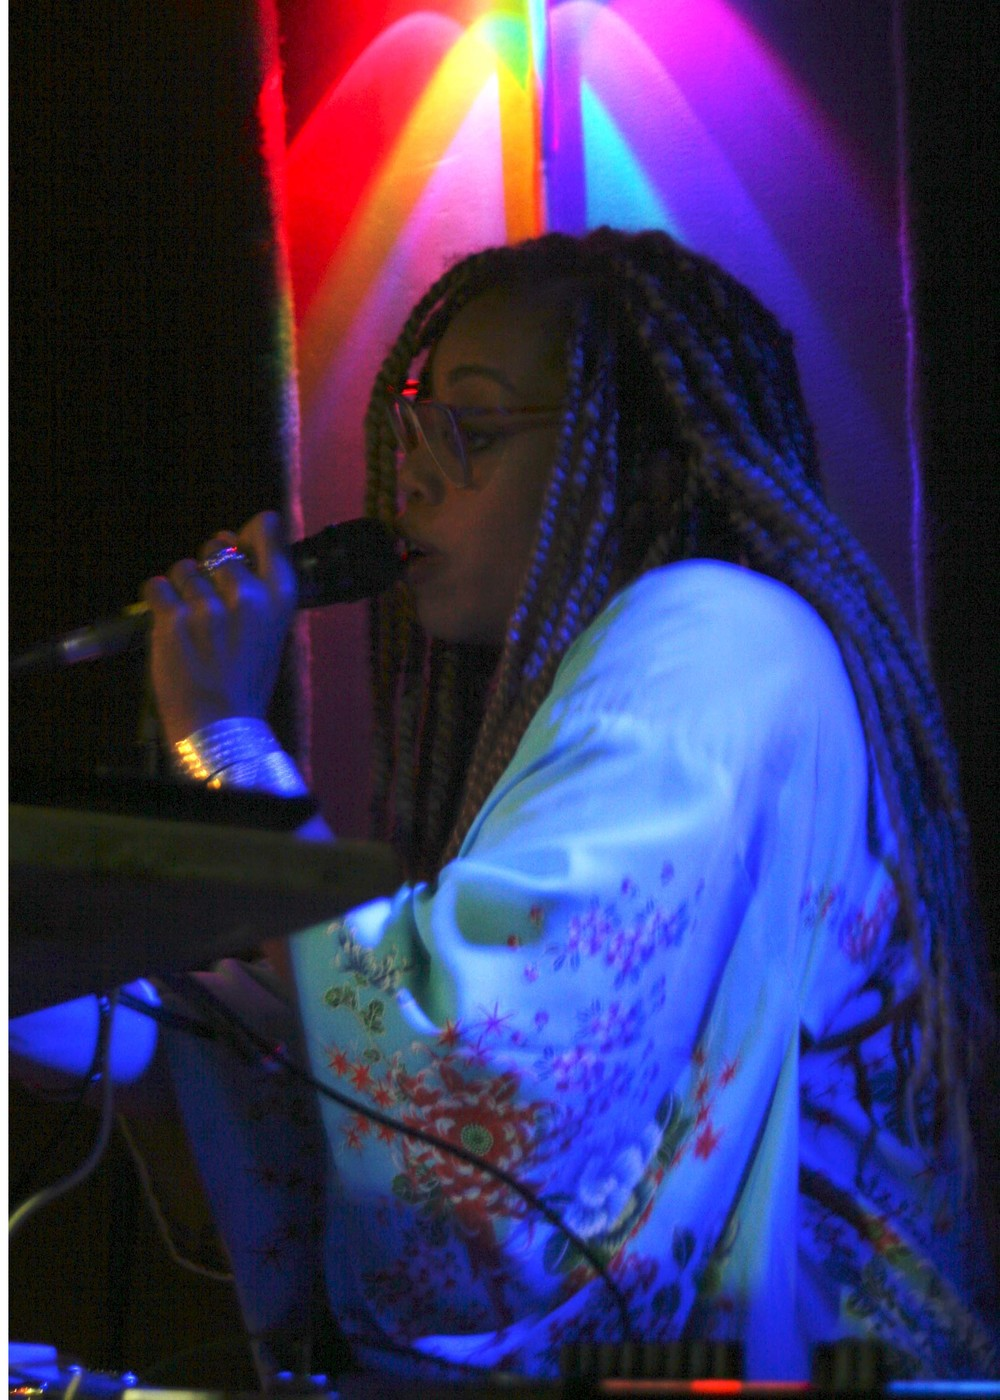 Suzi Analogue at The Sound Chamber IV presented by Bloodhound NY (August show - recap) Image 9